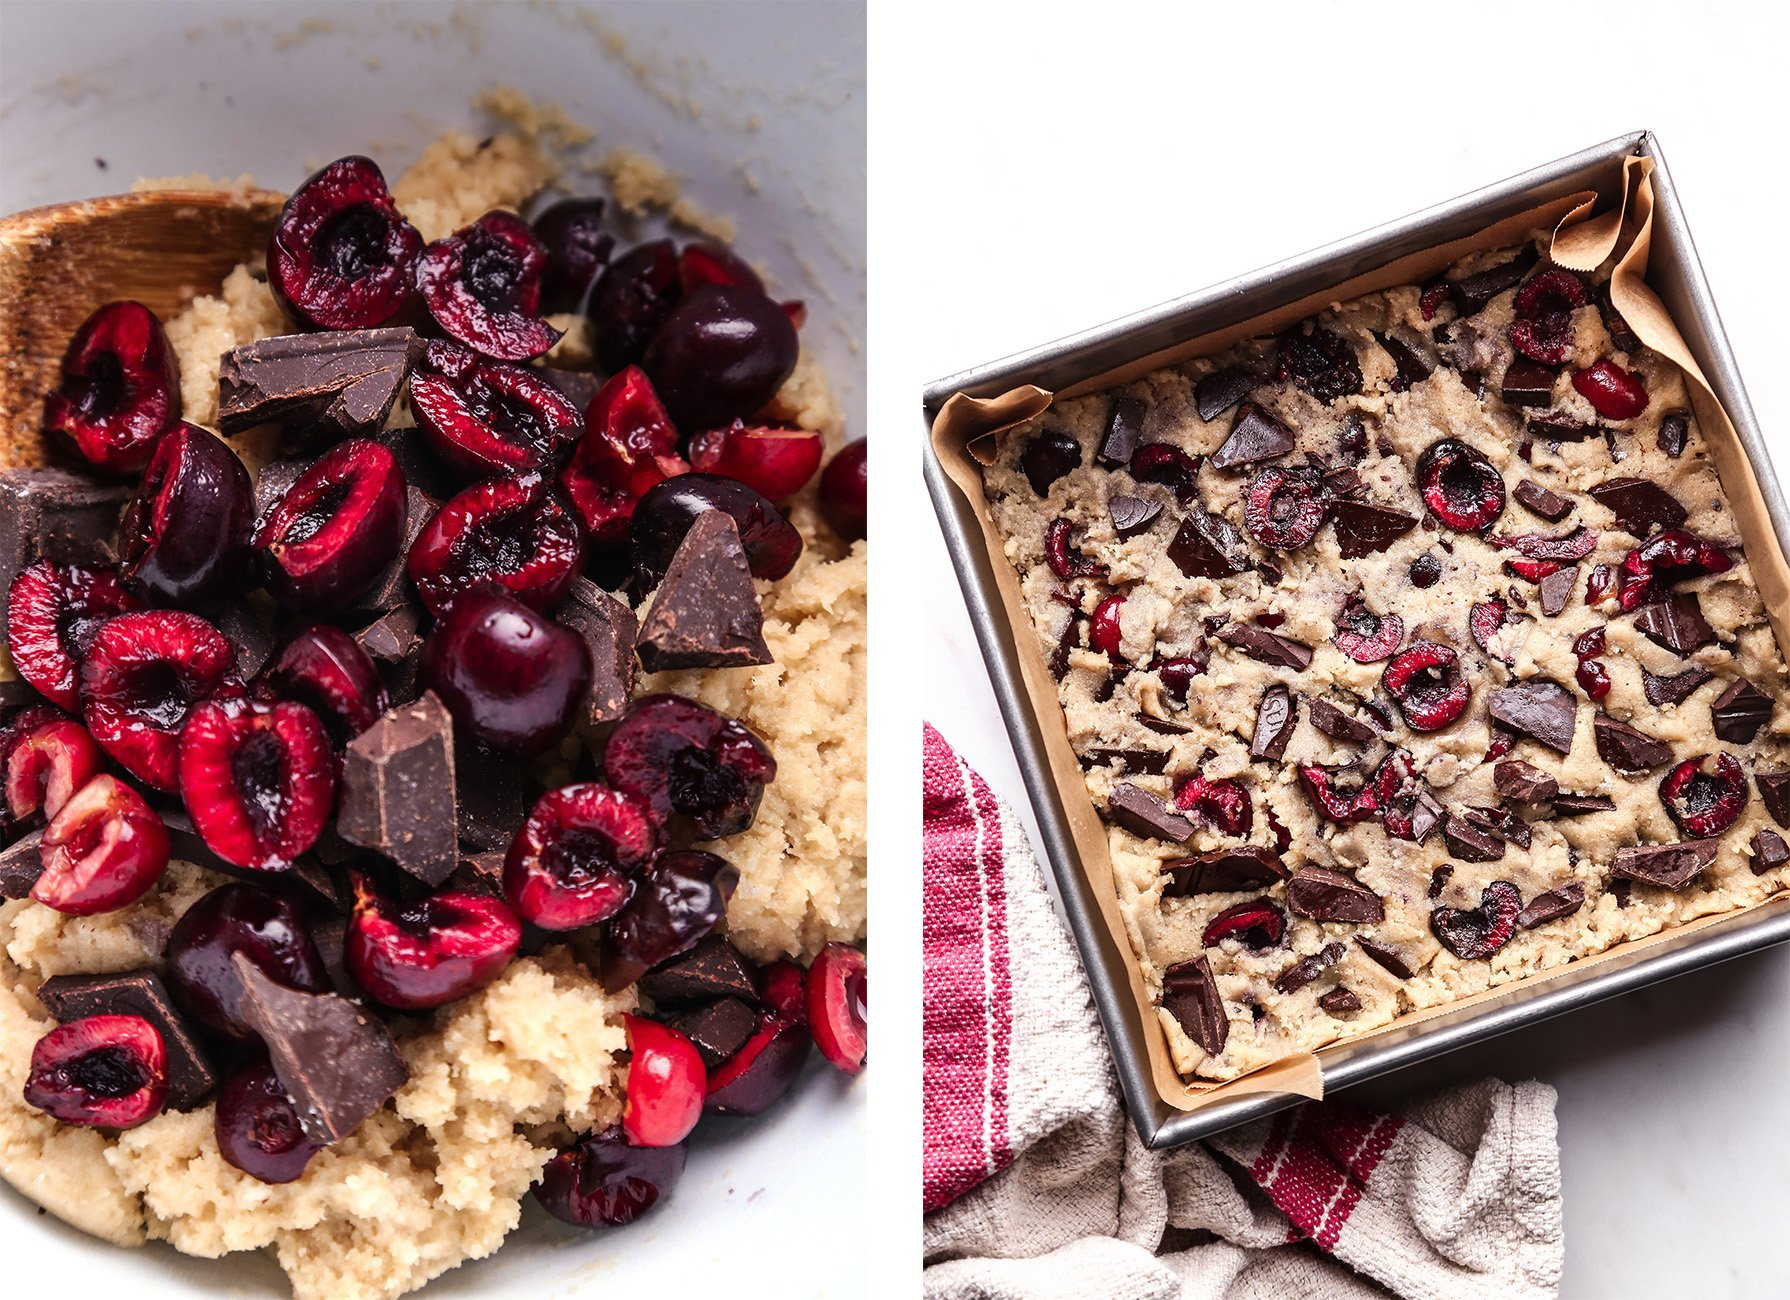 Cherry Chocolate Chip Bars | Vegan friendly and free of gluten and refined sugar.